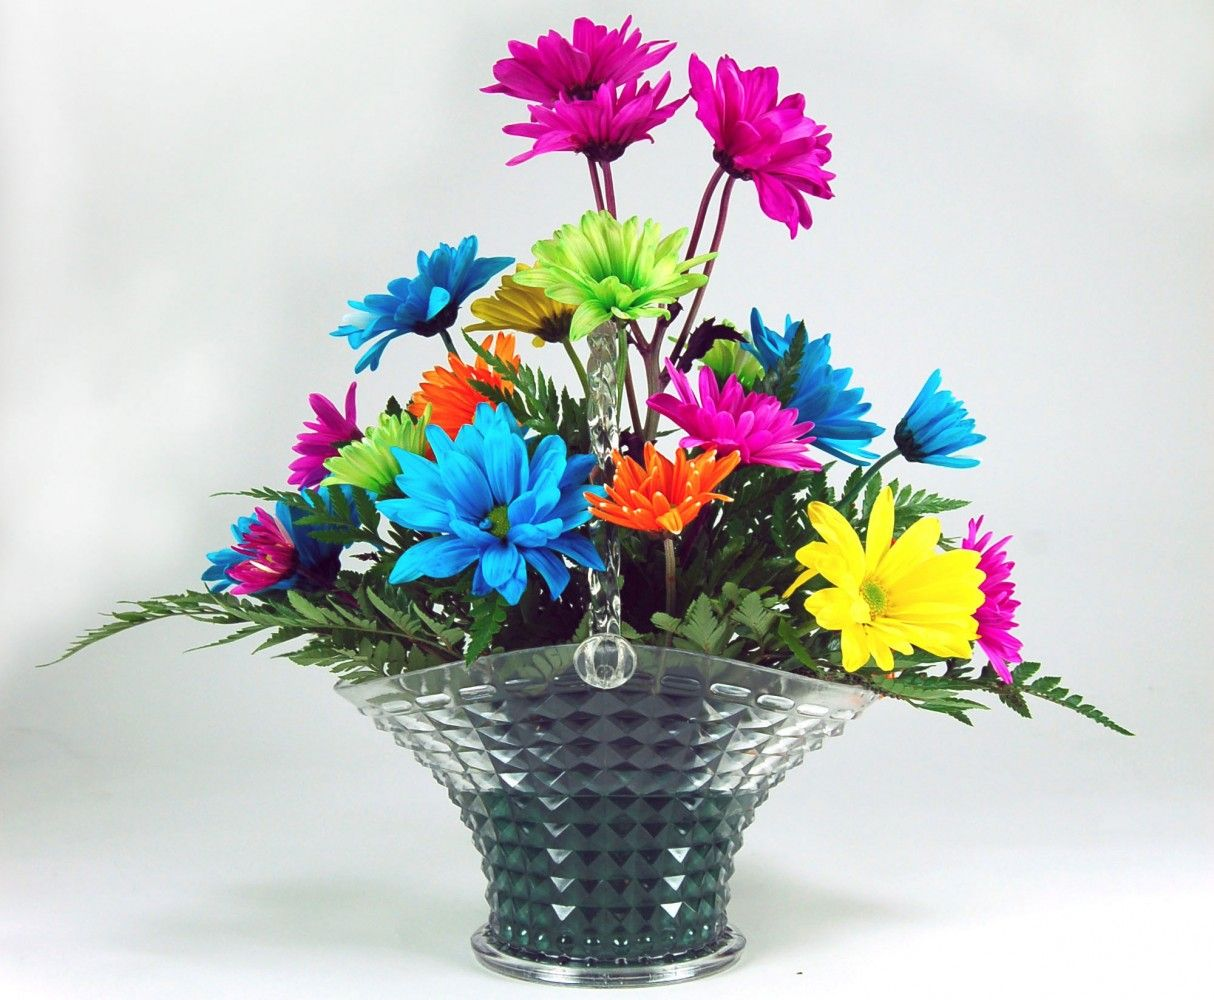 Pictures of birthday flowers flower image directory flower pictures of birthday flowers flower image directory flower dhlflorist Images